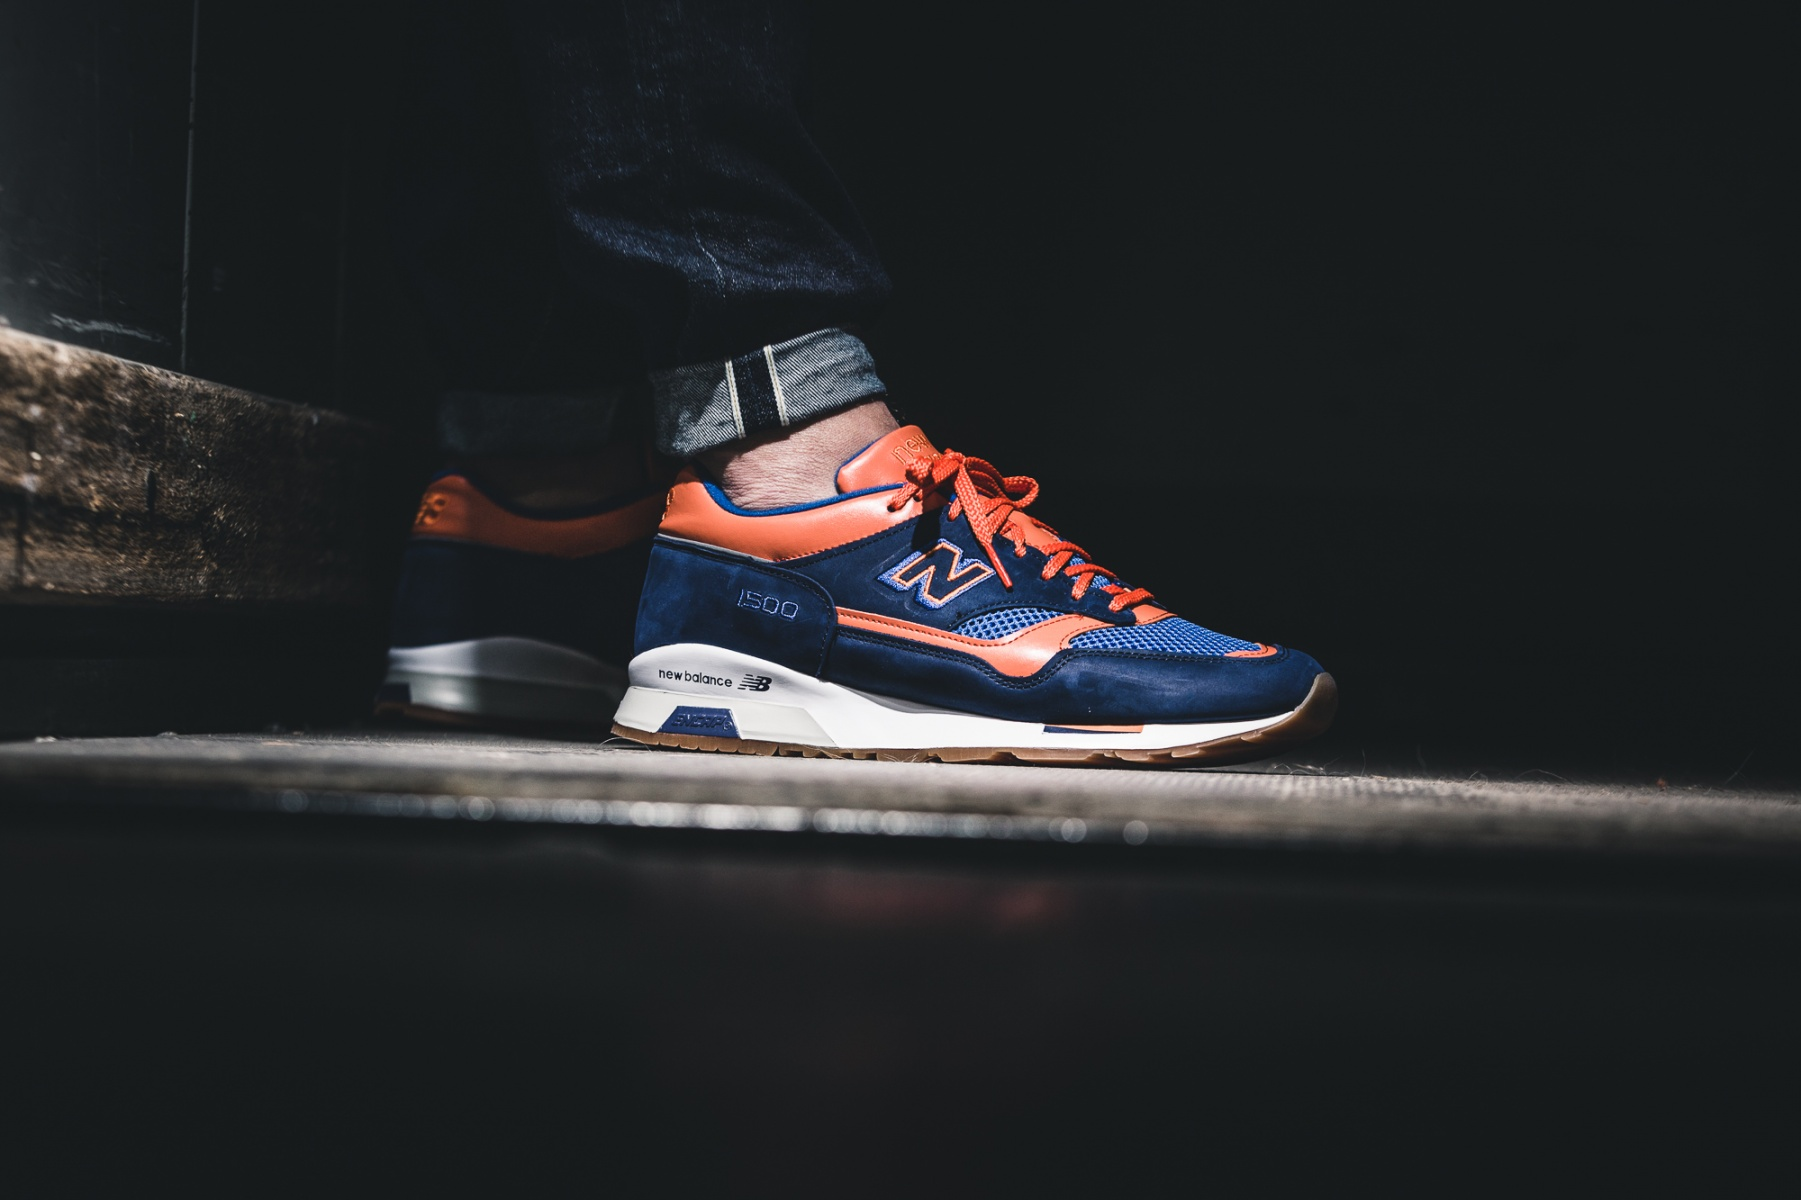 new-balance-m1500no-made-in-uk-blau-orange-520731-60-10-mood-1